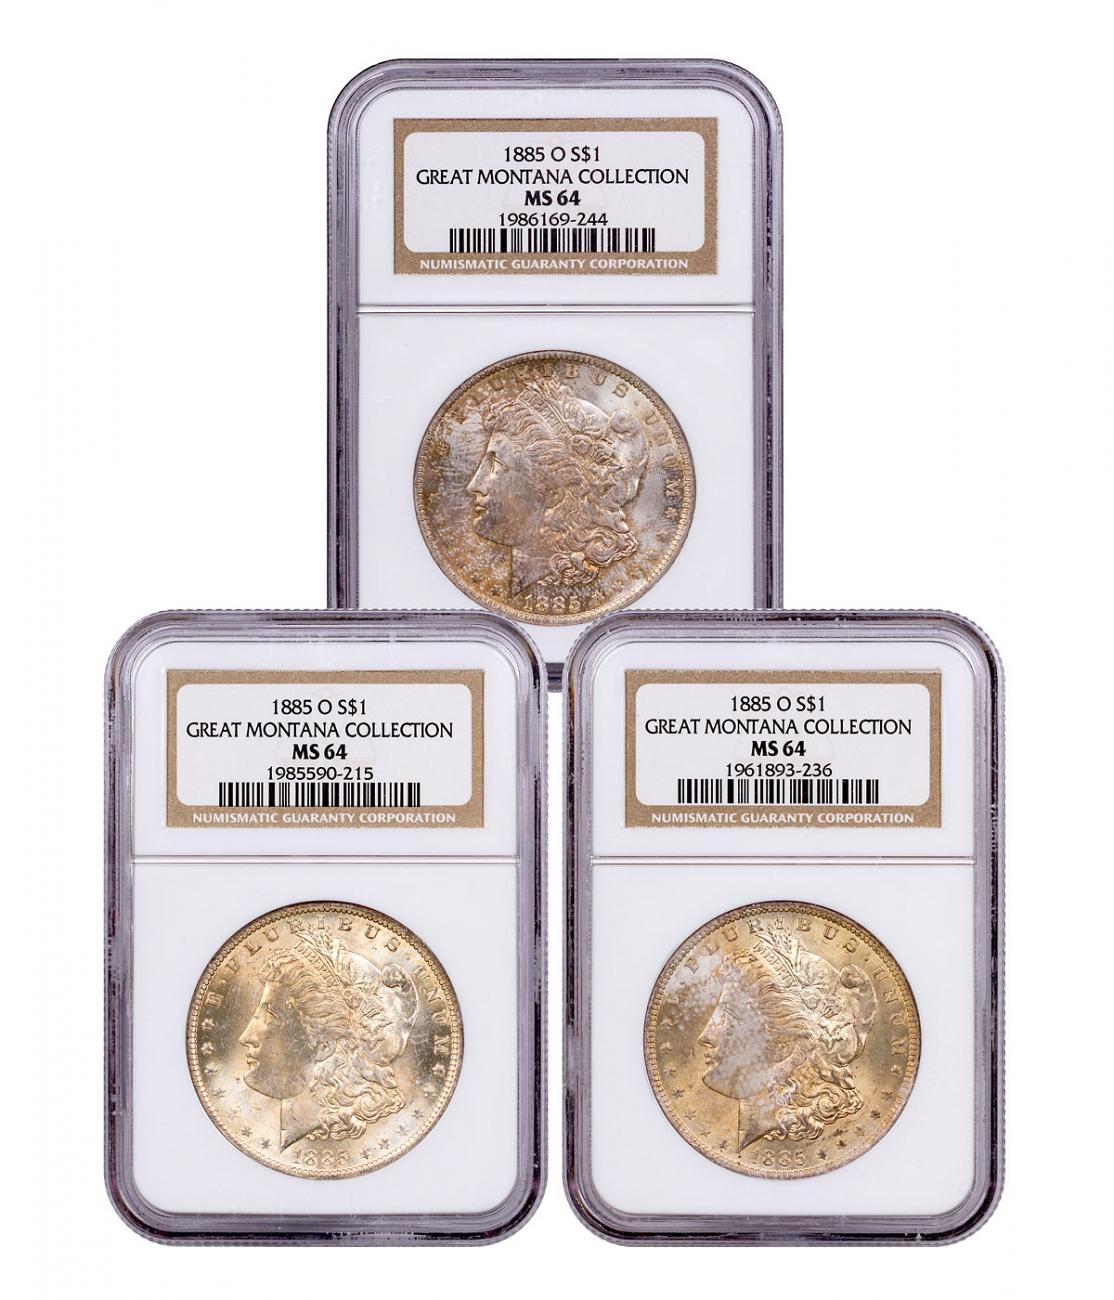 3-Coin Set - 1885-O Morgan Silver Dollar From the Great Montana Collection NGC MS64 Toned CPCR 9244